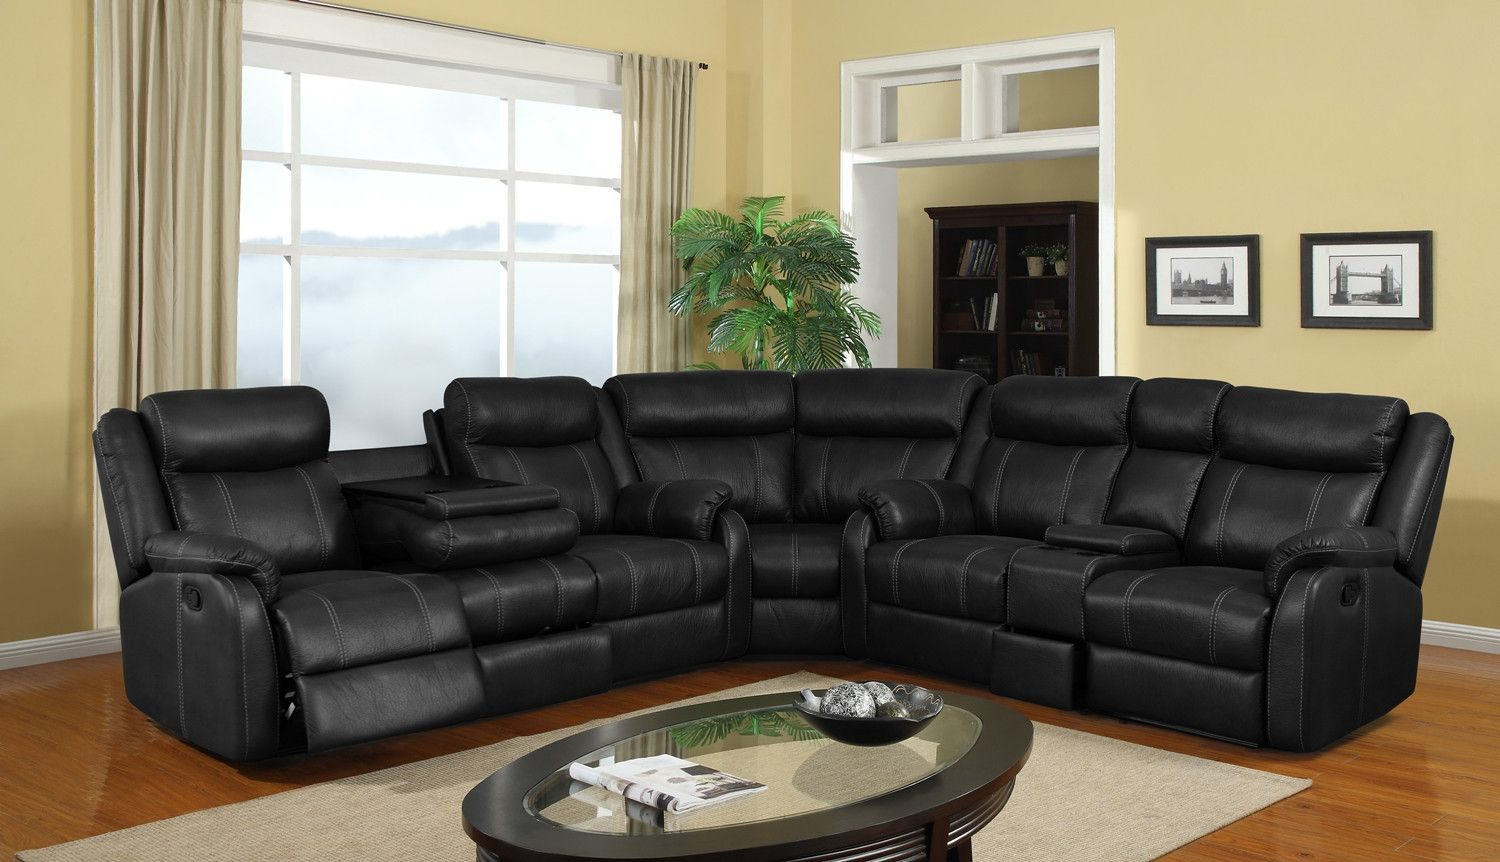 Onyx reclining sectional with cupholder storage sectional sofa with recliner leather sectional sofas